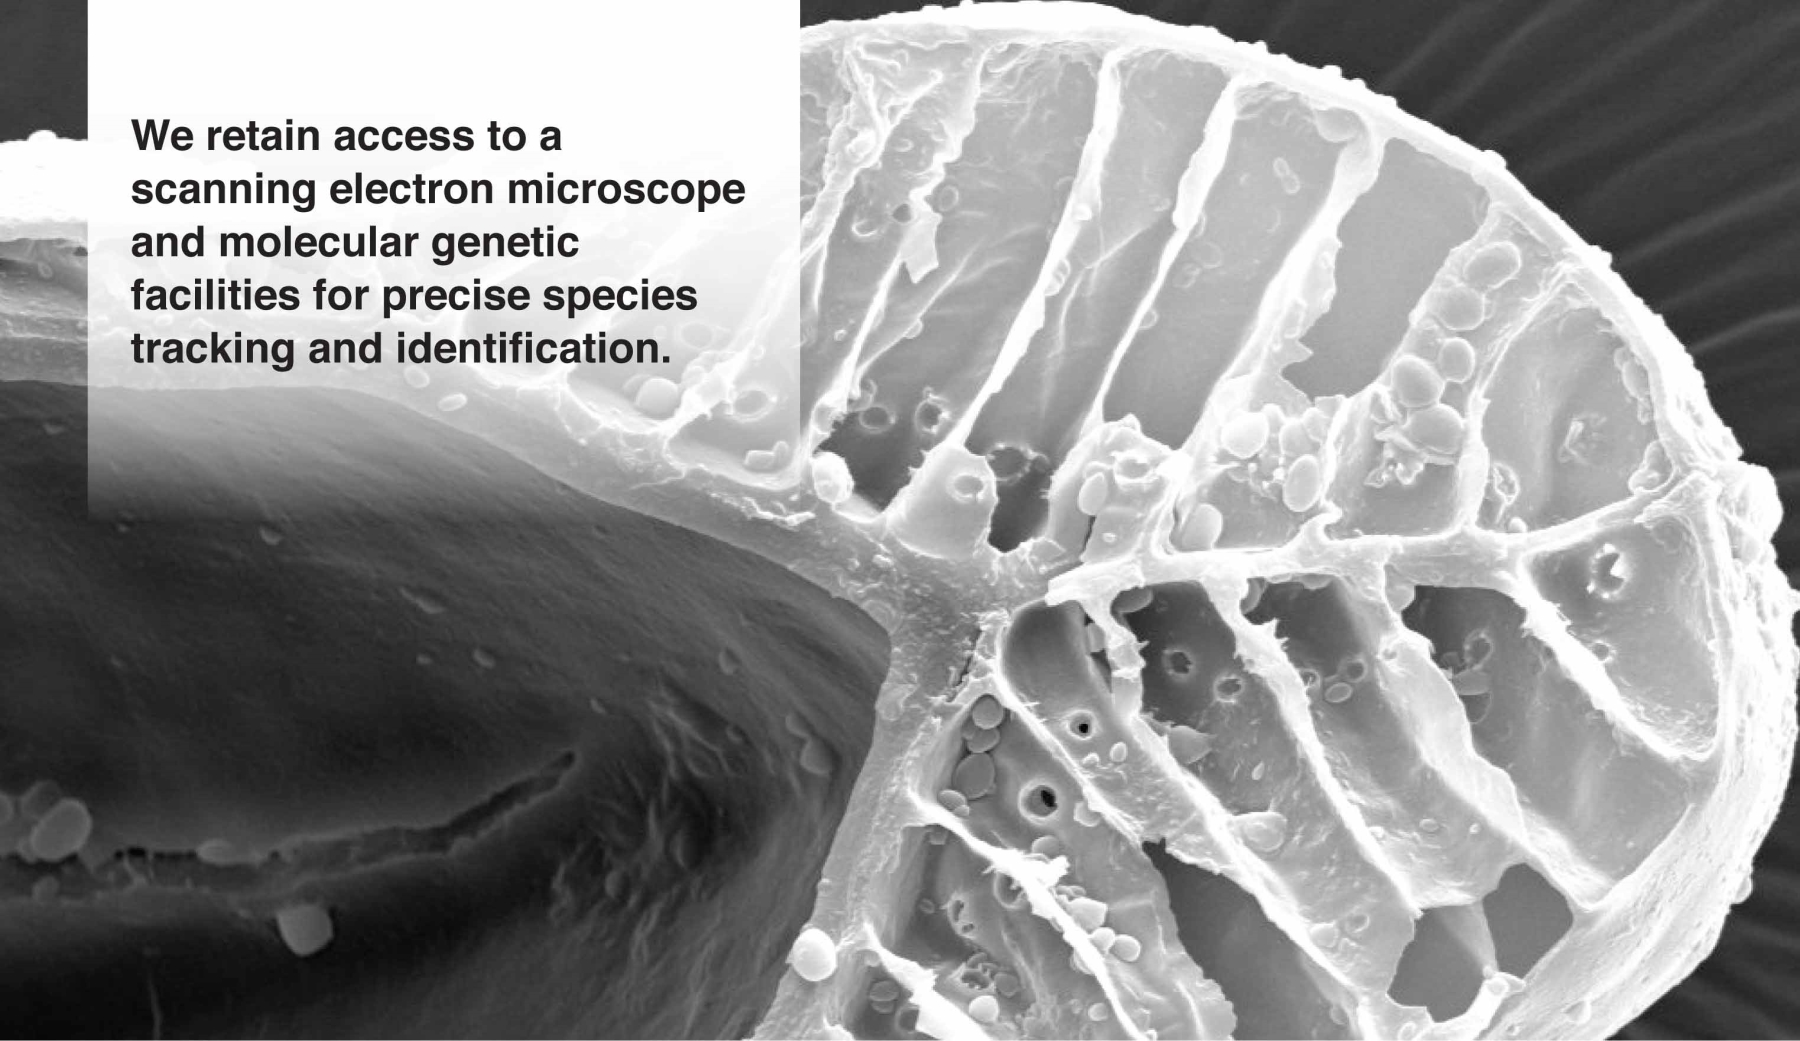 We retain access to a scanning electron microscope and molecular genetic facilities for precise species tracking and identification.